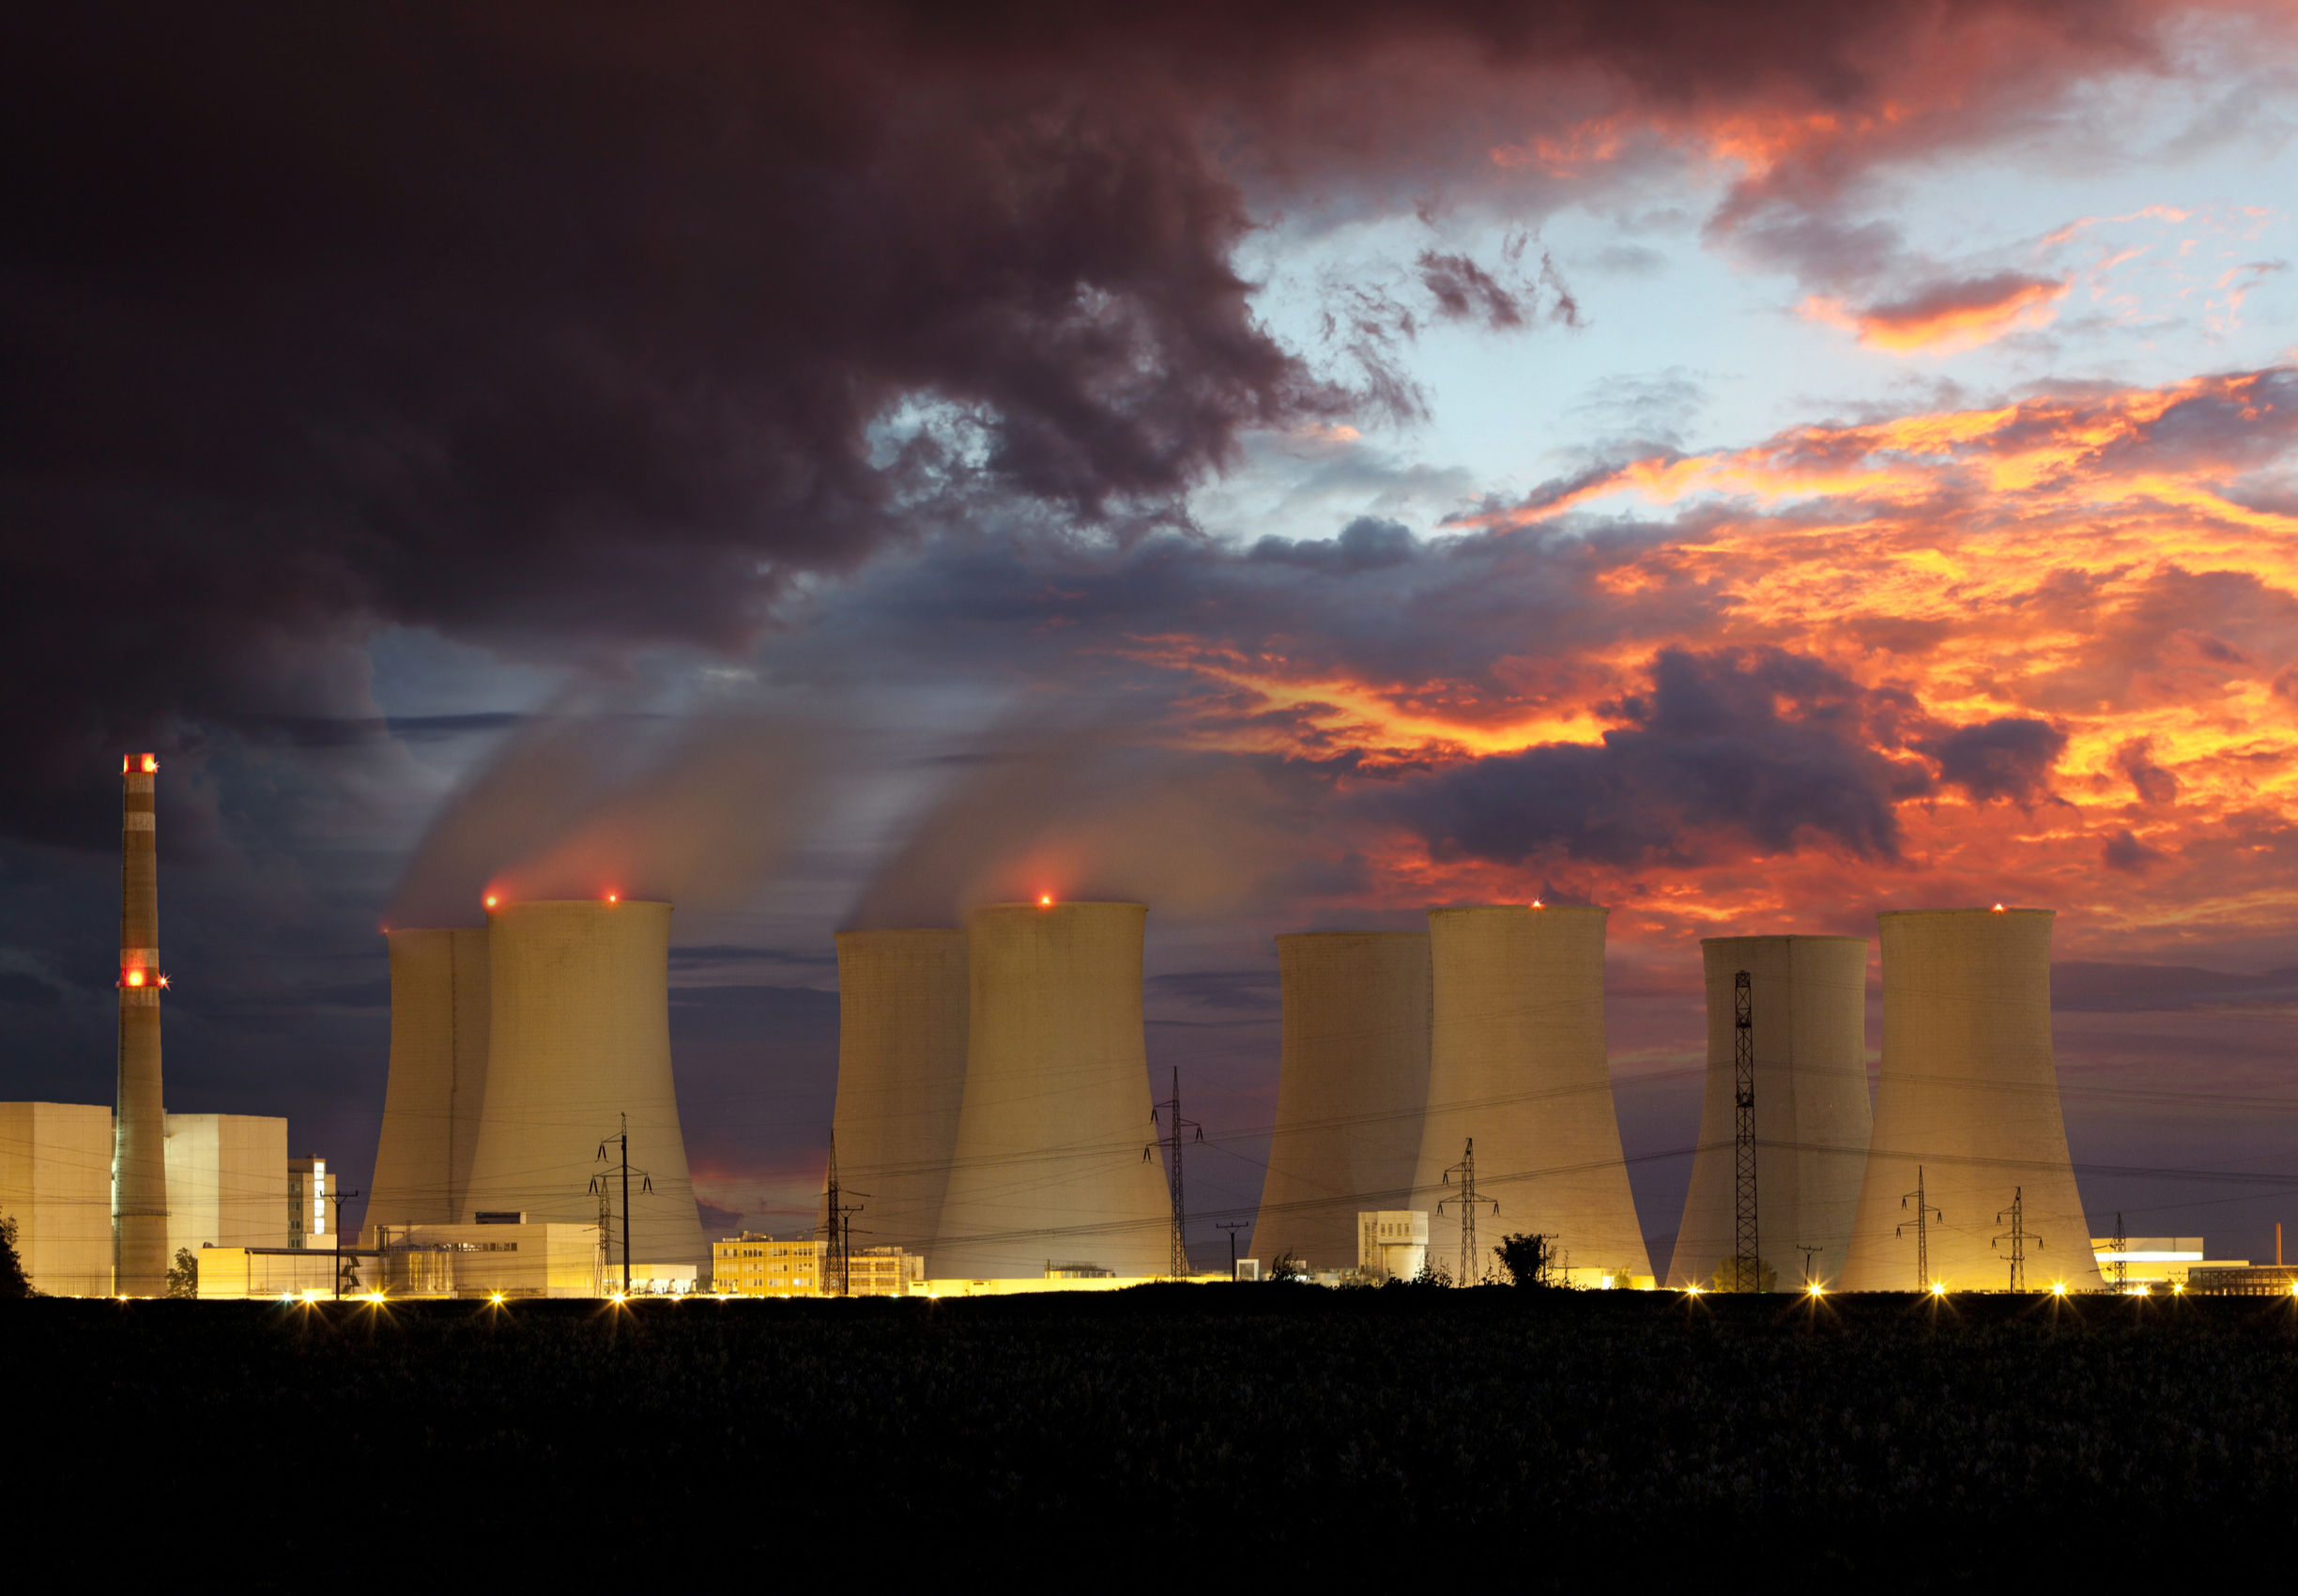 Why Proposals to Sell Nuclear Reactors to Saudi Arabia Raise Red Flags